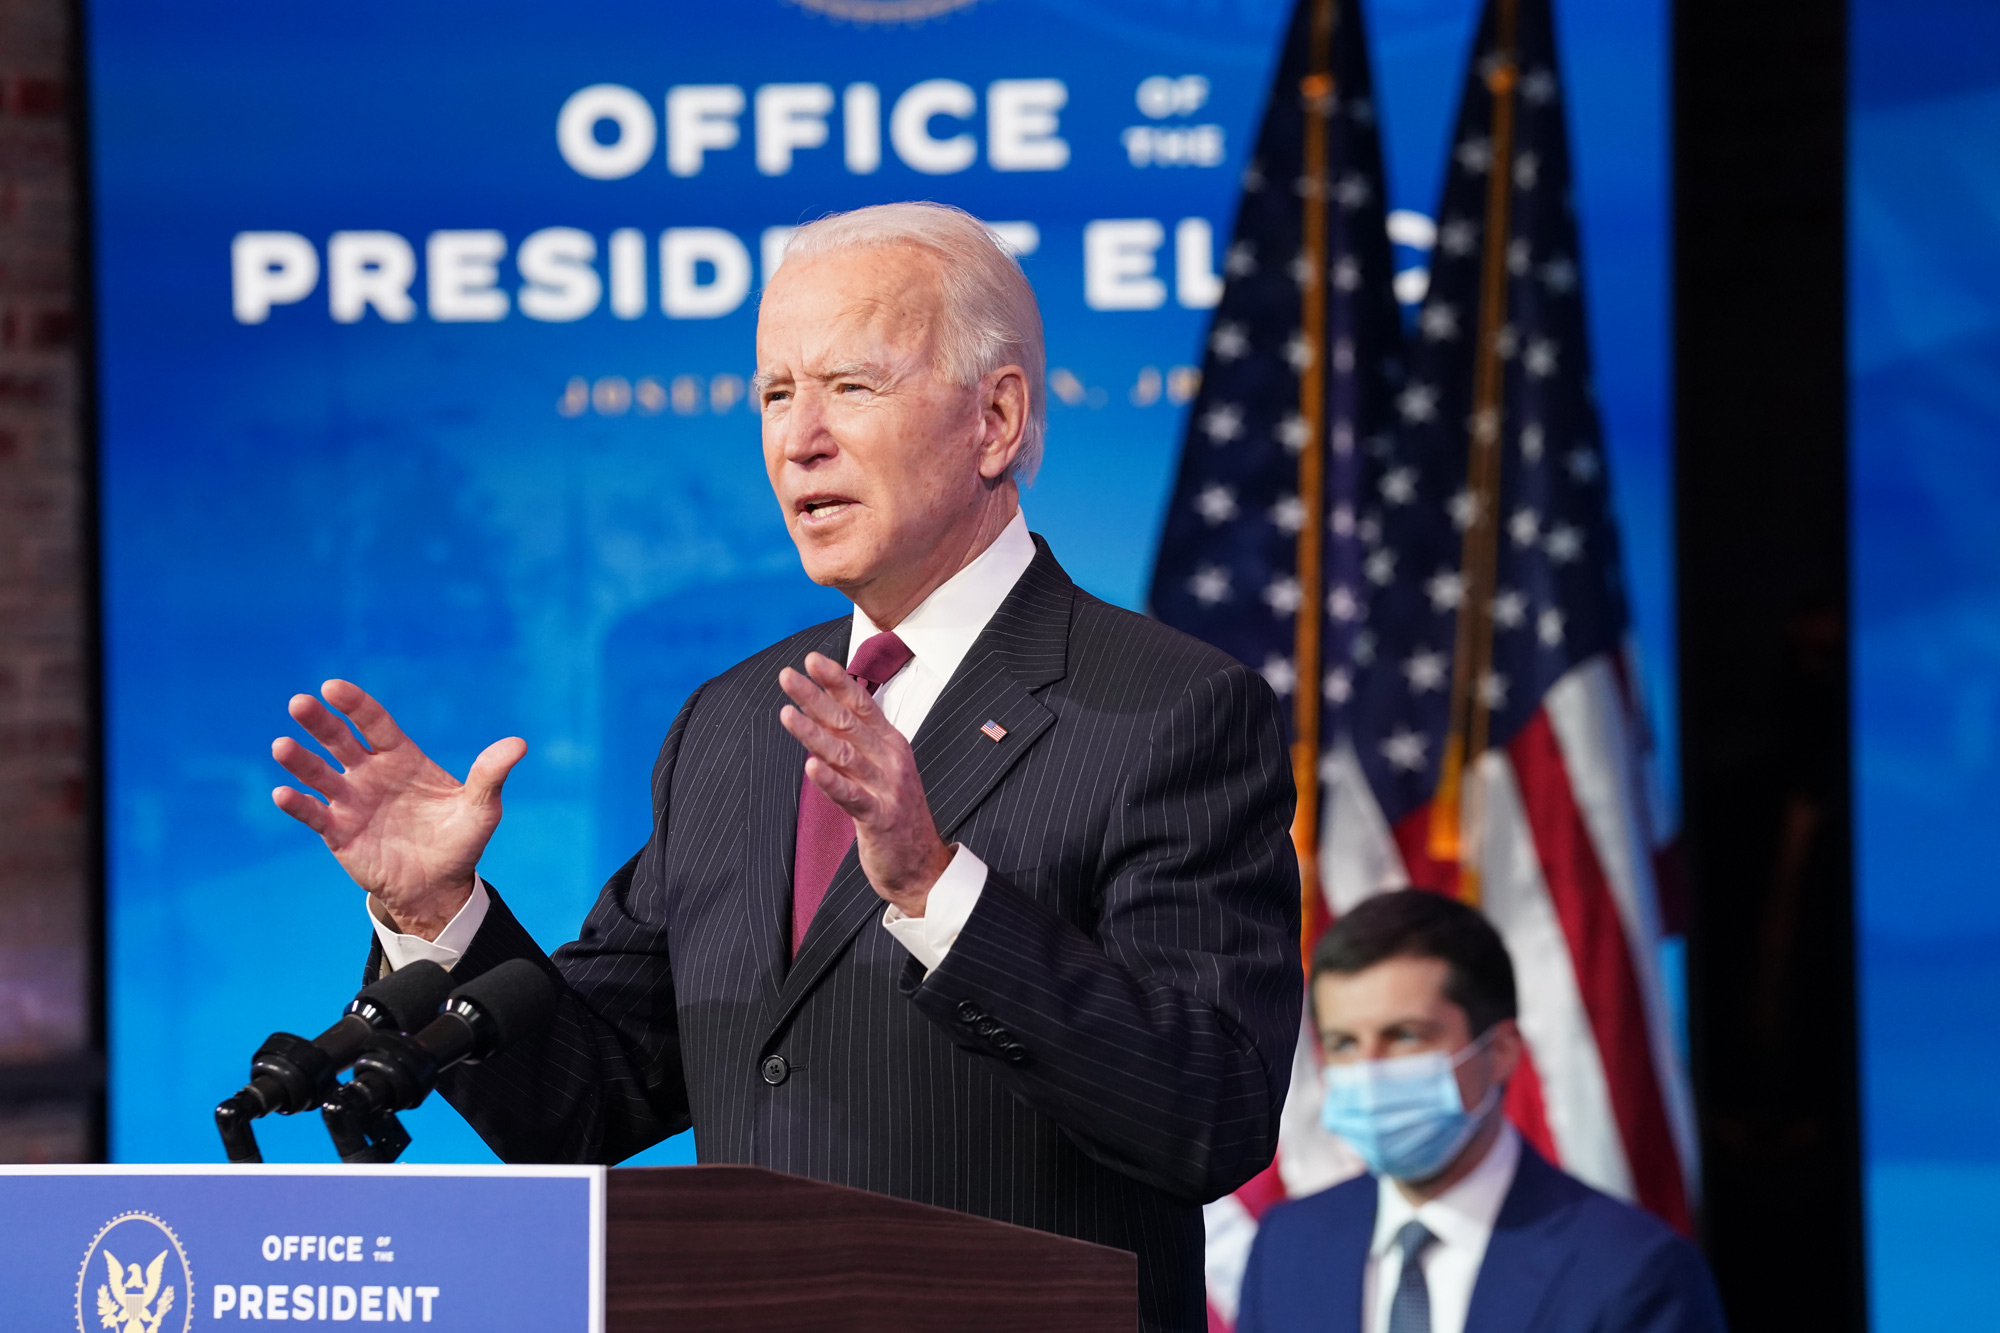 President-elect Joe Biden speaks during a news conference at Biden's transition headquarters on December 16 in Wilmington, Delaware.